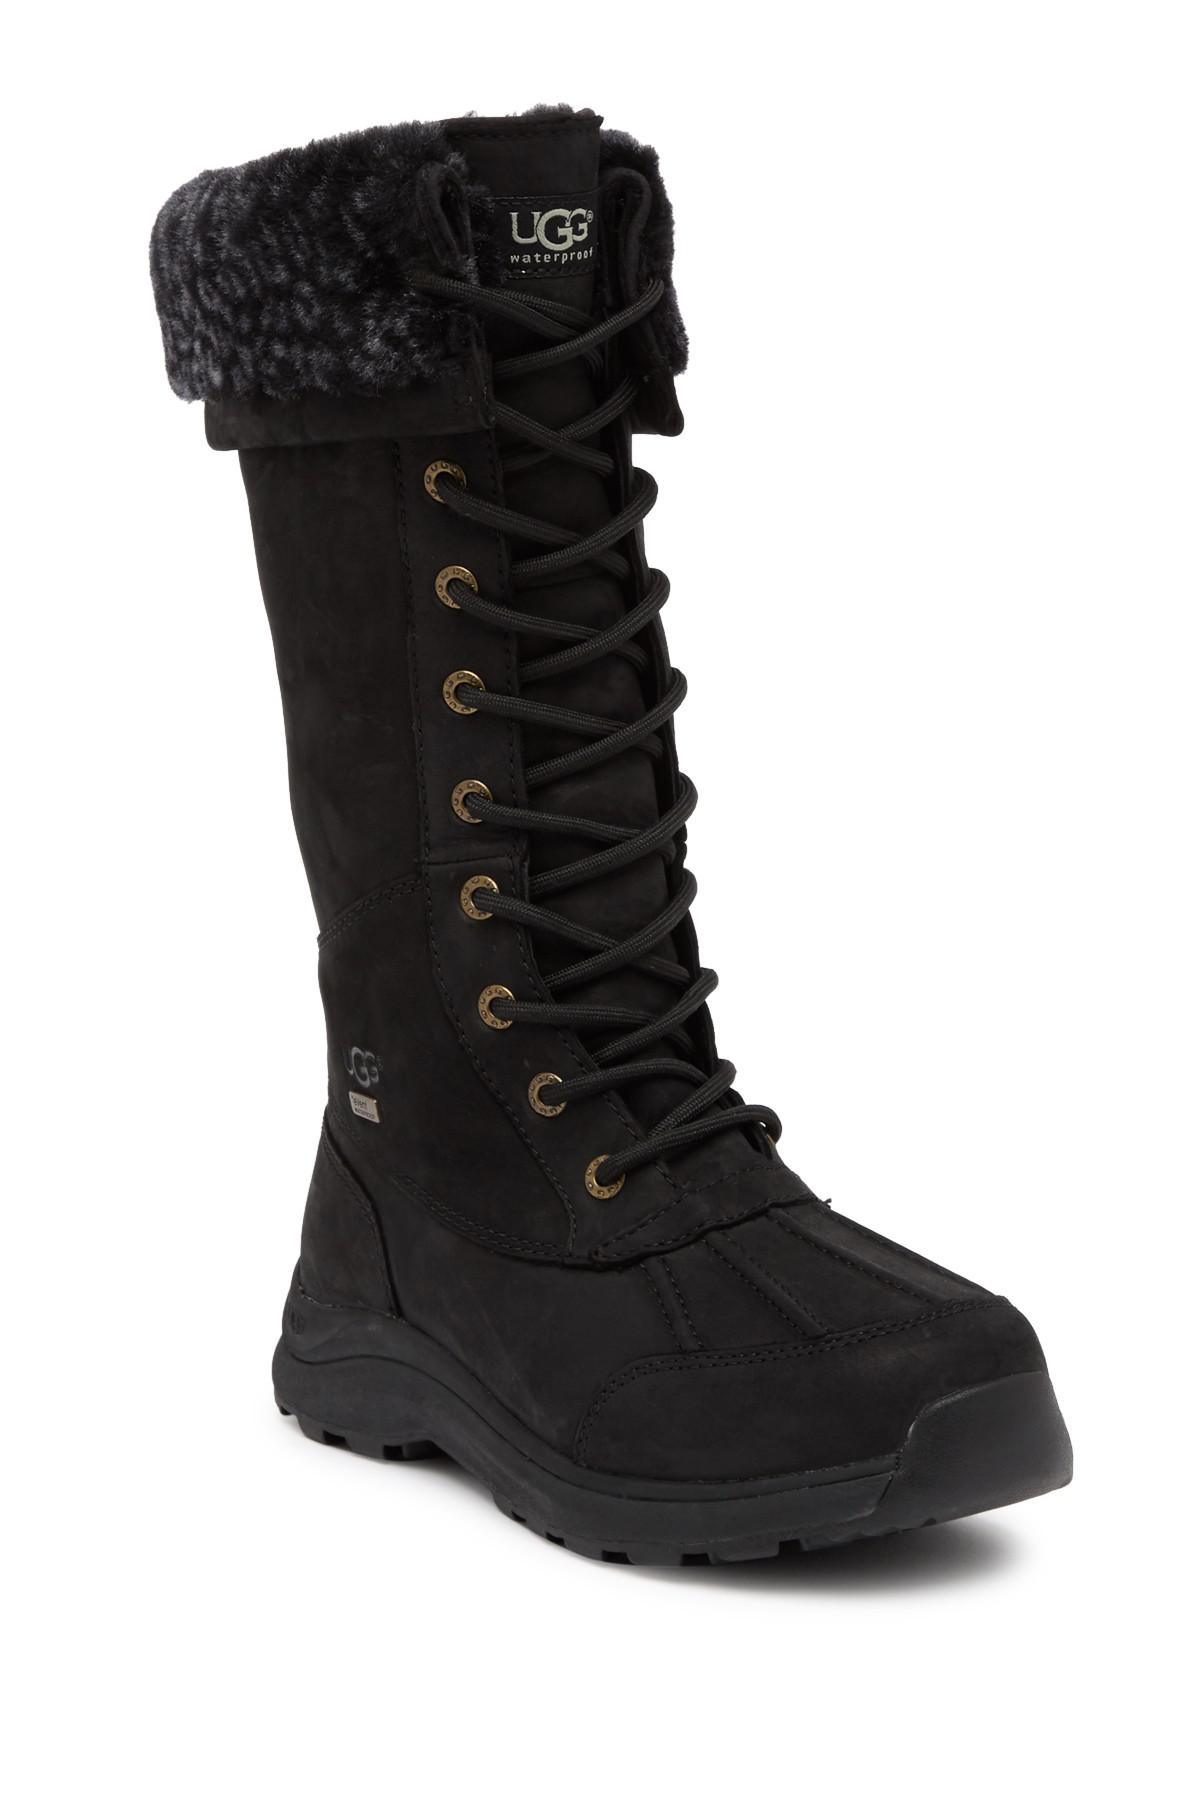 Ugg Adirondack Iii Tall Leopard Waterproof Suede Boot In